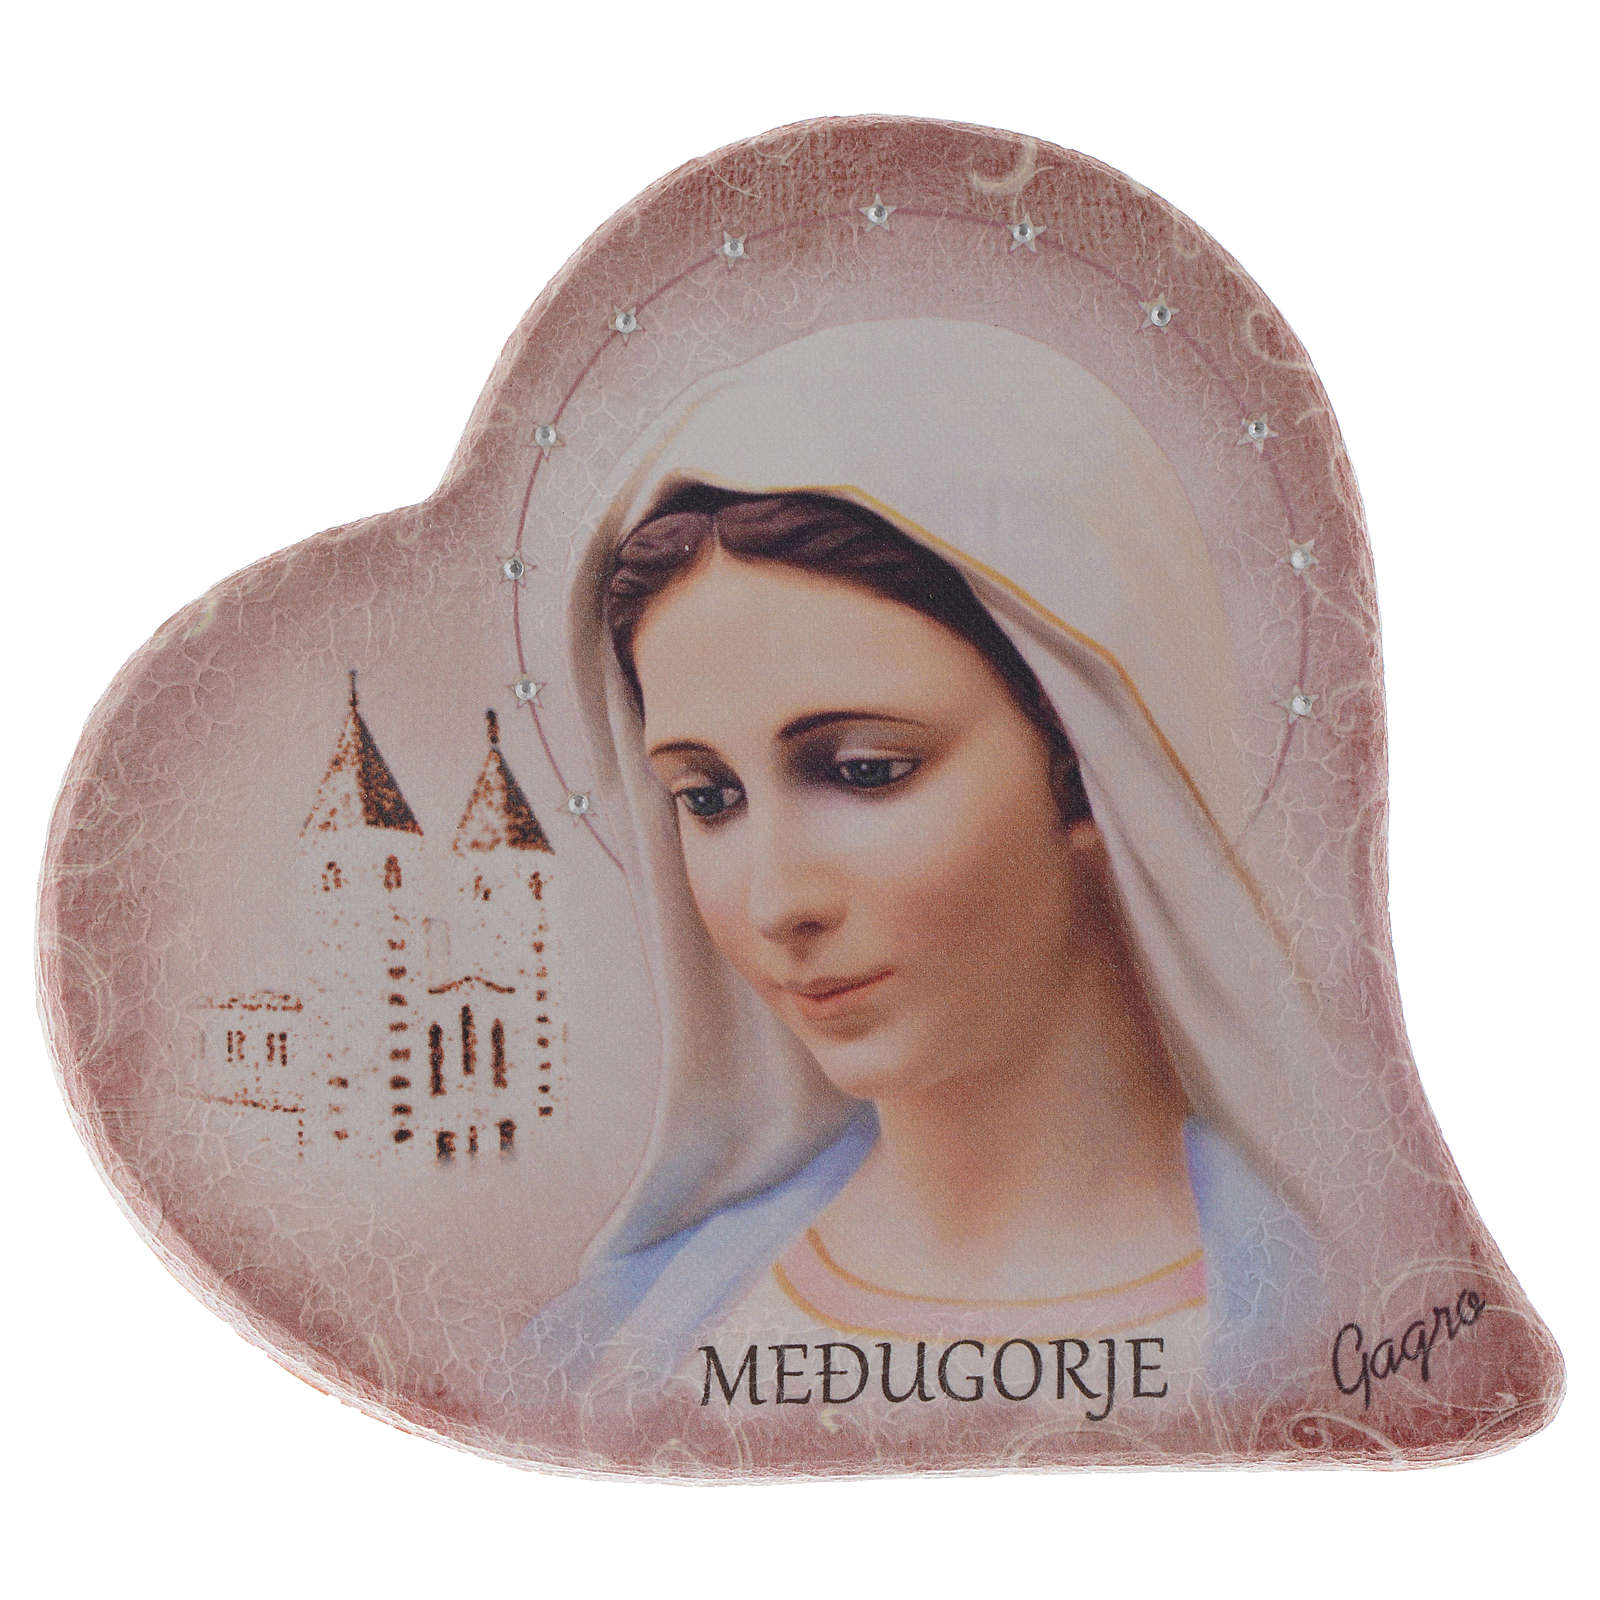 Our Lady of Medjugorje and church heart shaped in stone 15 cm 4